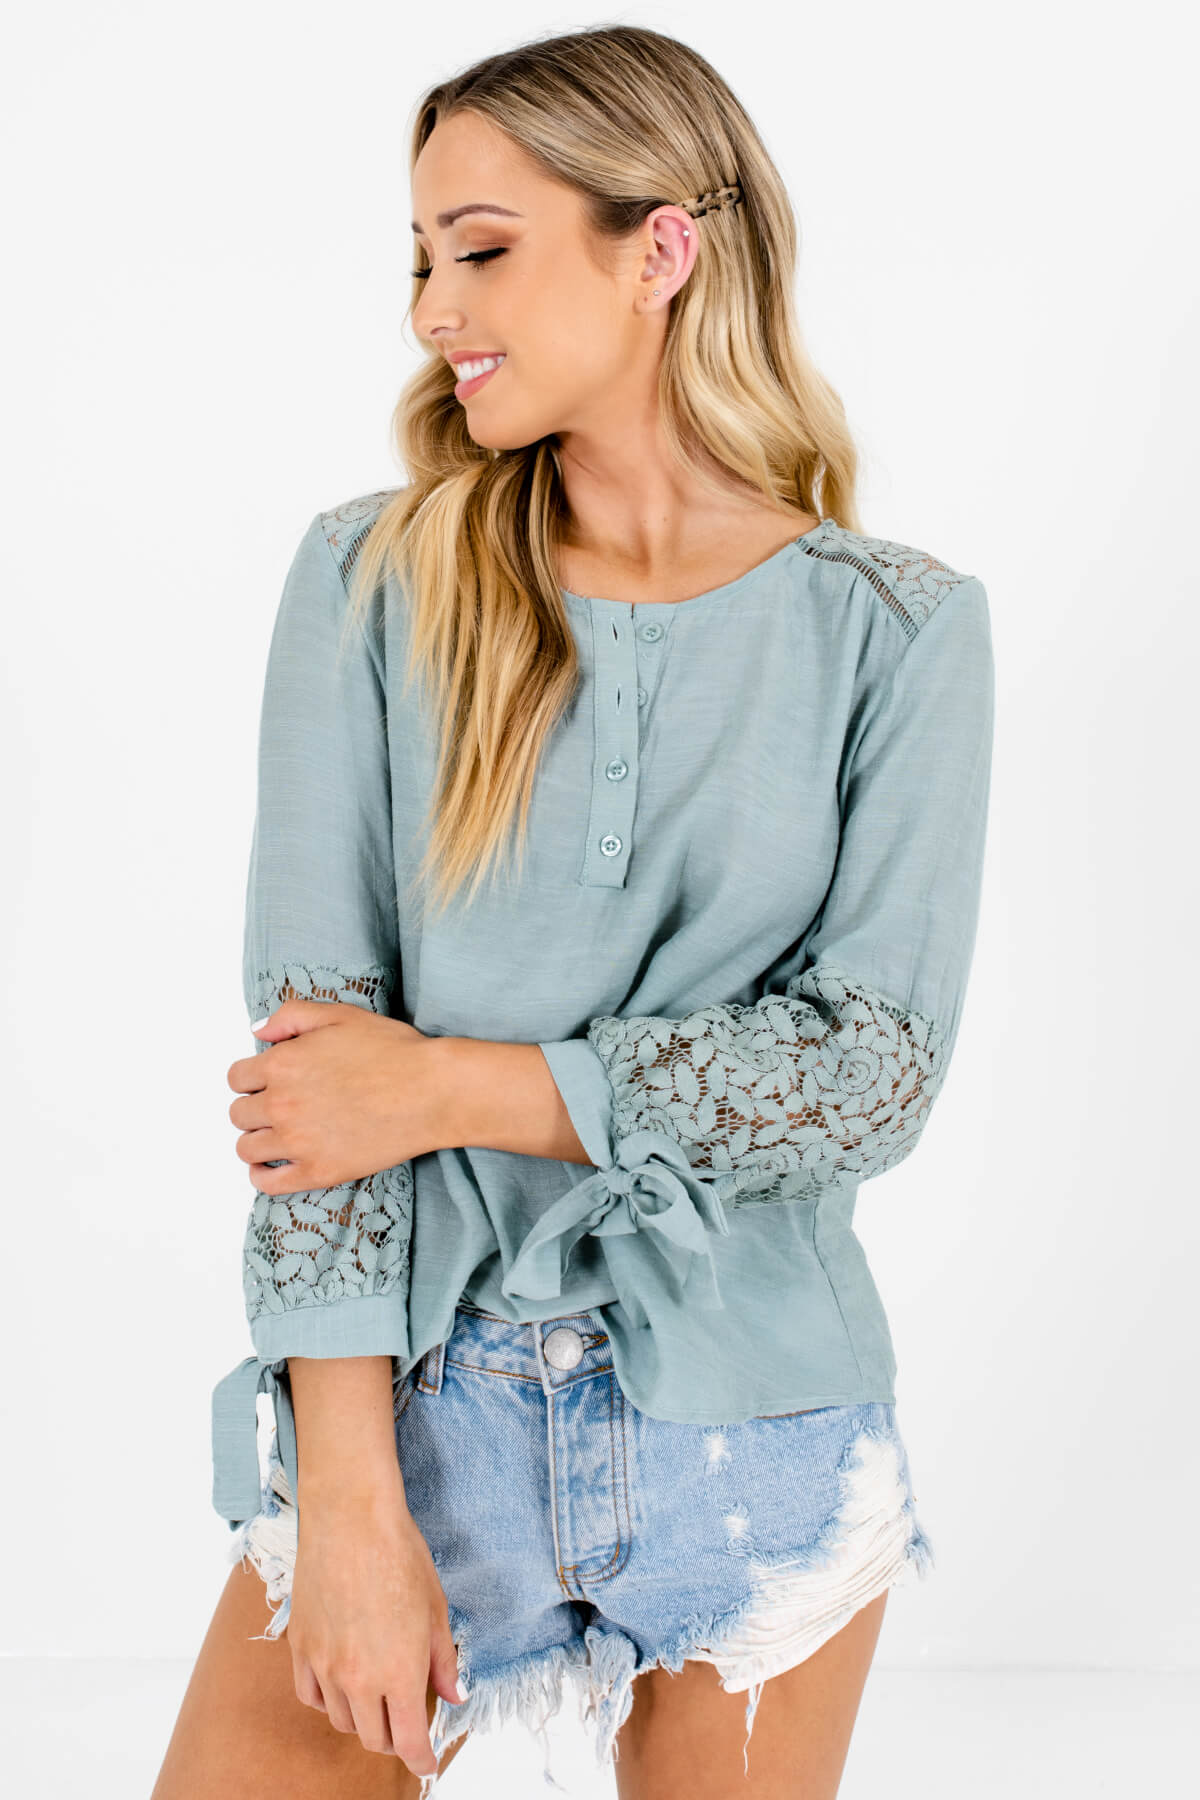 Turquoise Blue 3/4 Sleeve Floral Crochet Lace Tops for Women